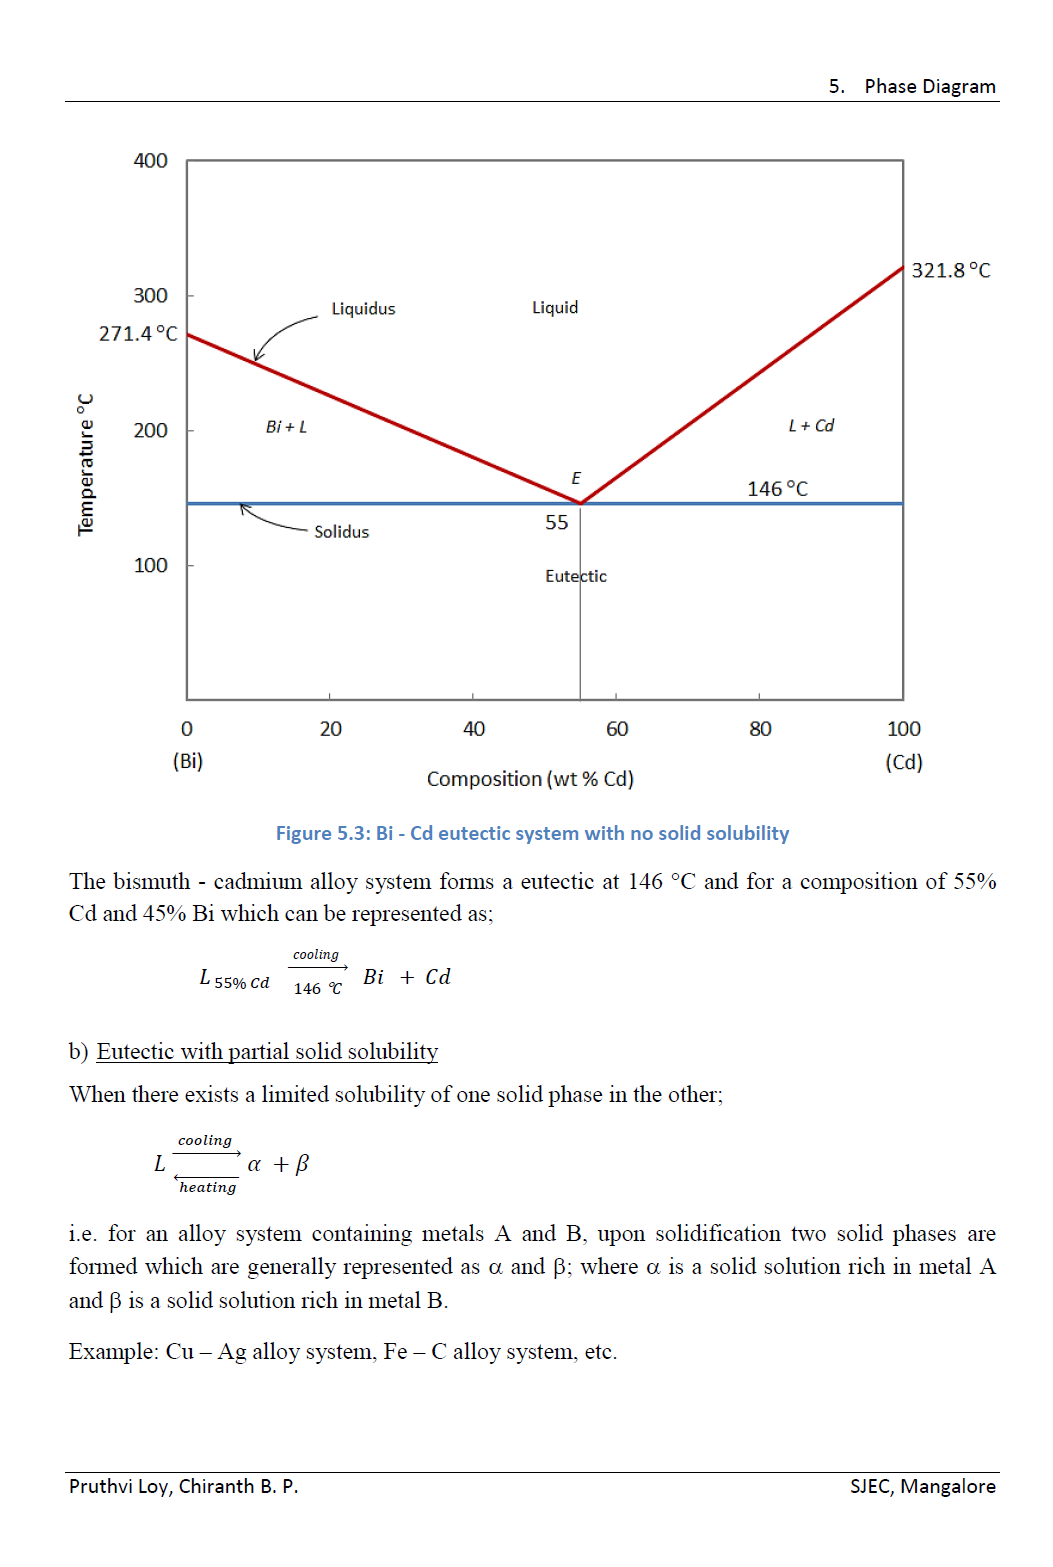 Material science and metallurgy 5 phase diagram explain the effect of certain alloying additives on the iron carbon equilibrium system pooptronica Gallery